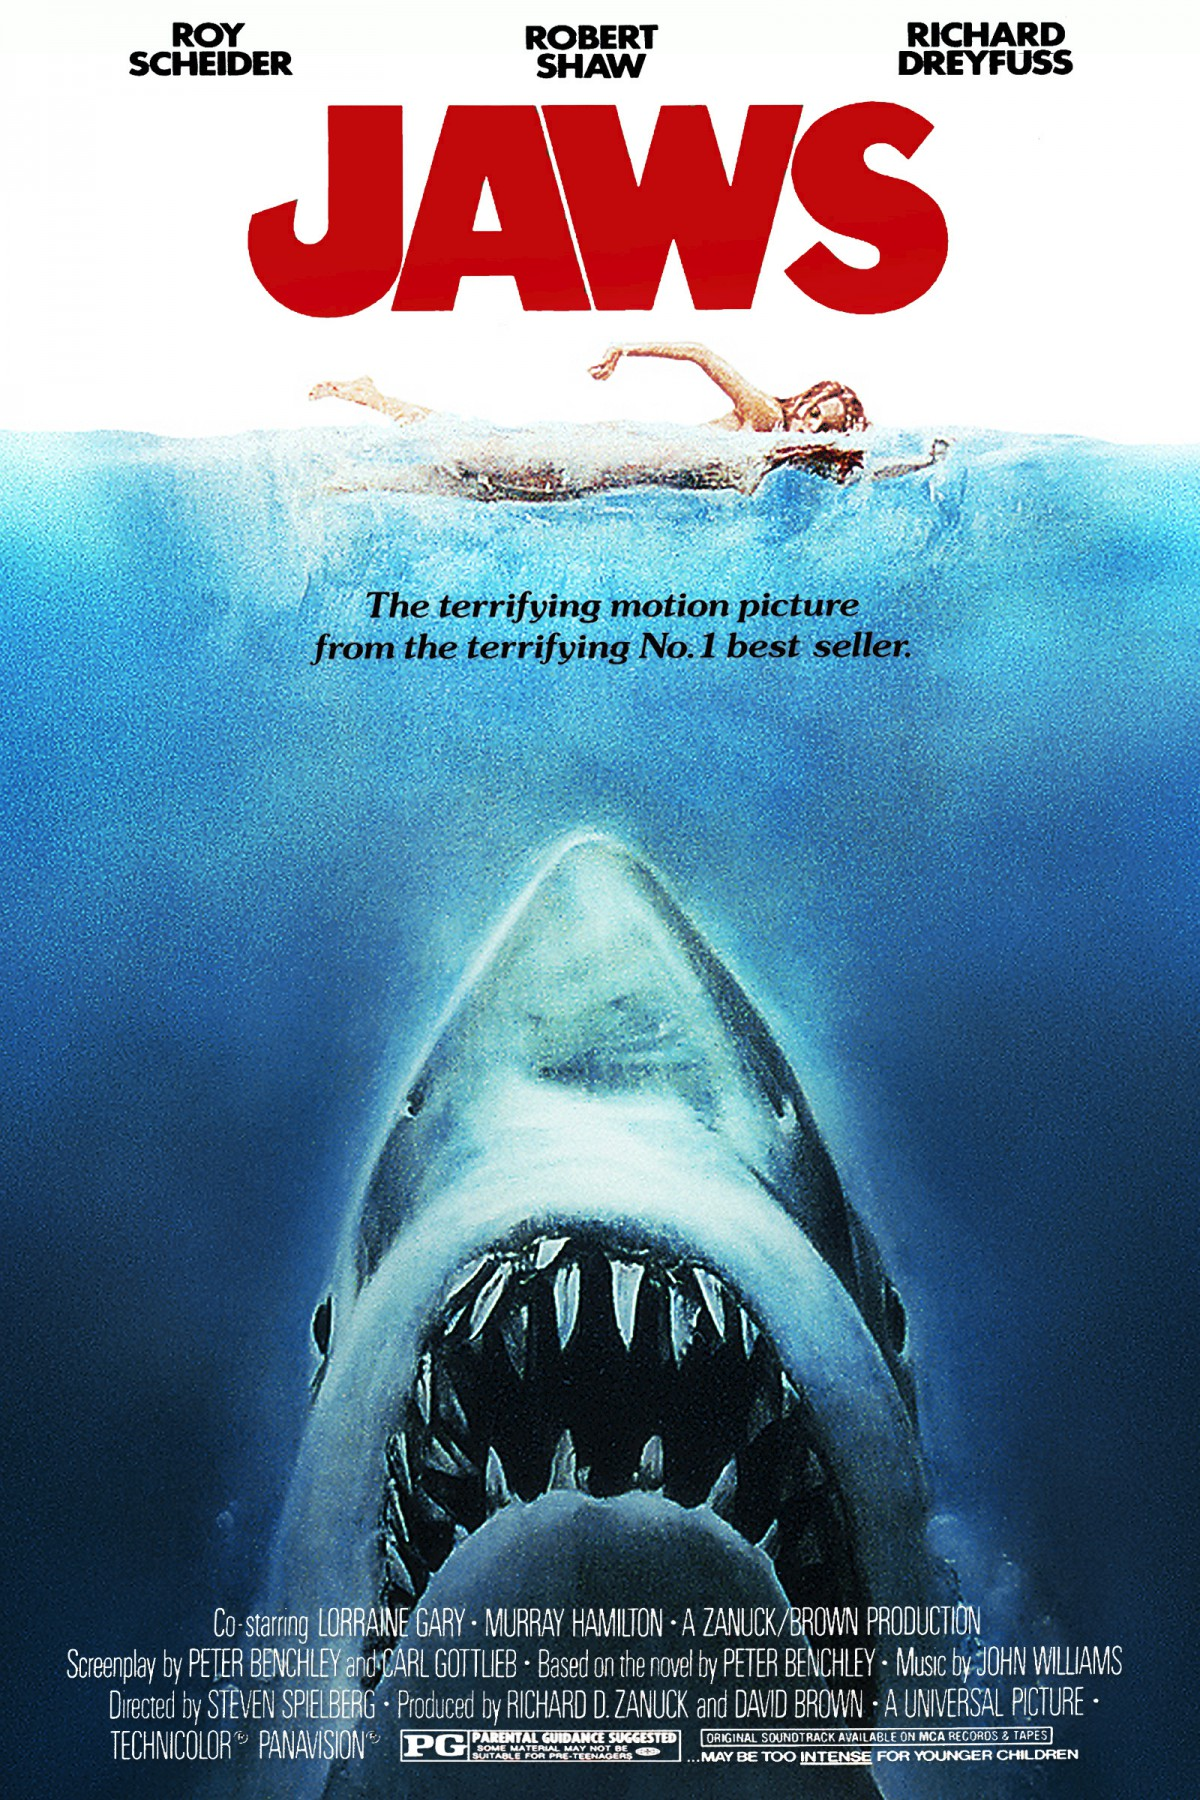 1. Jaws (1975)